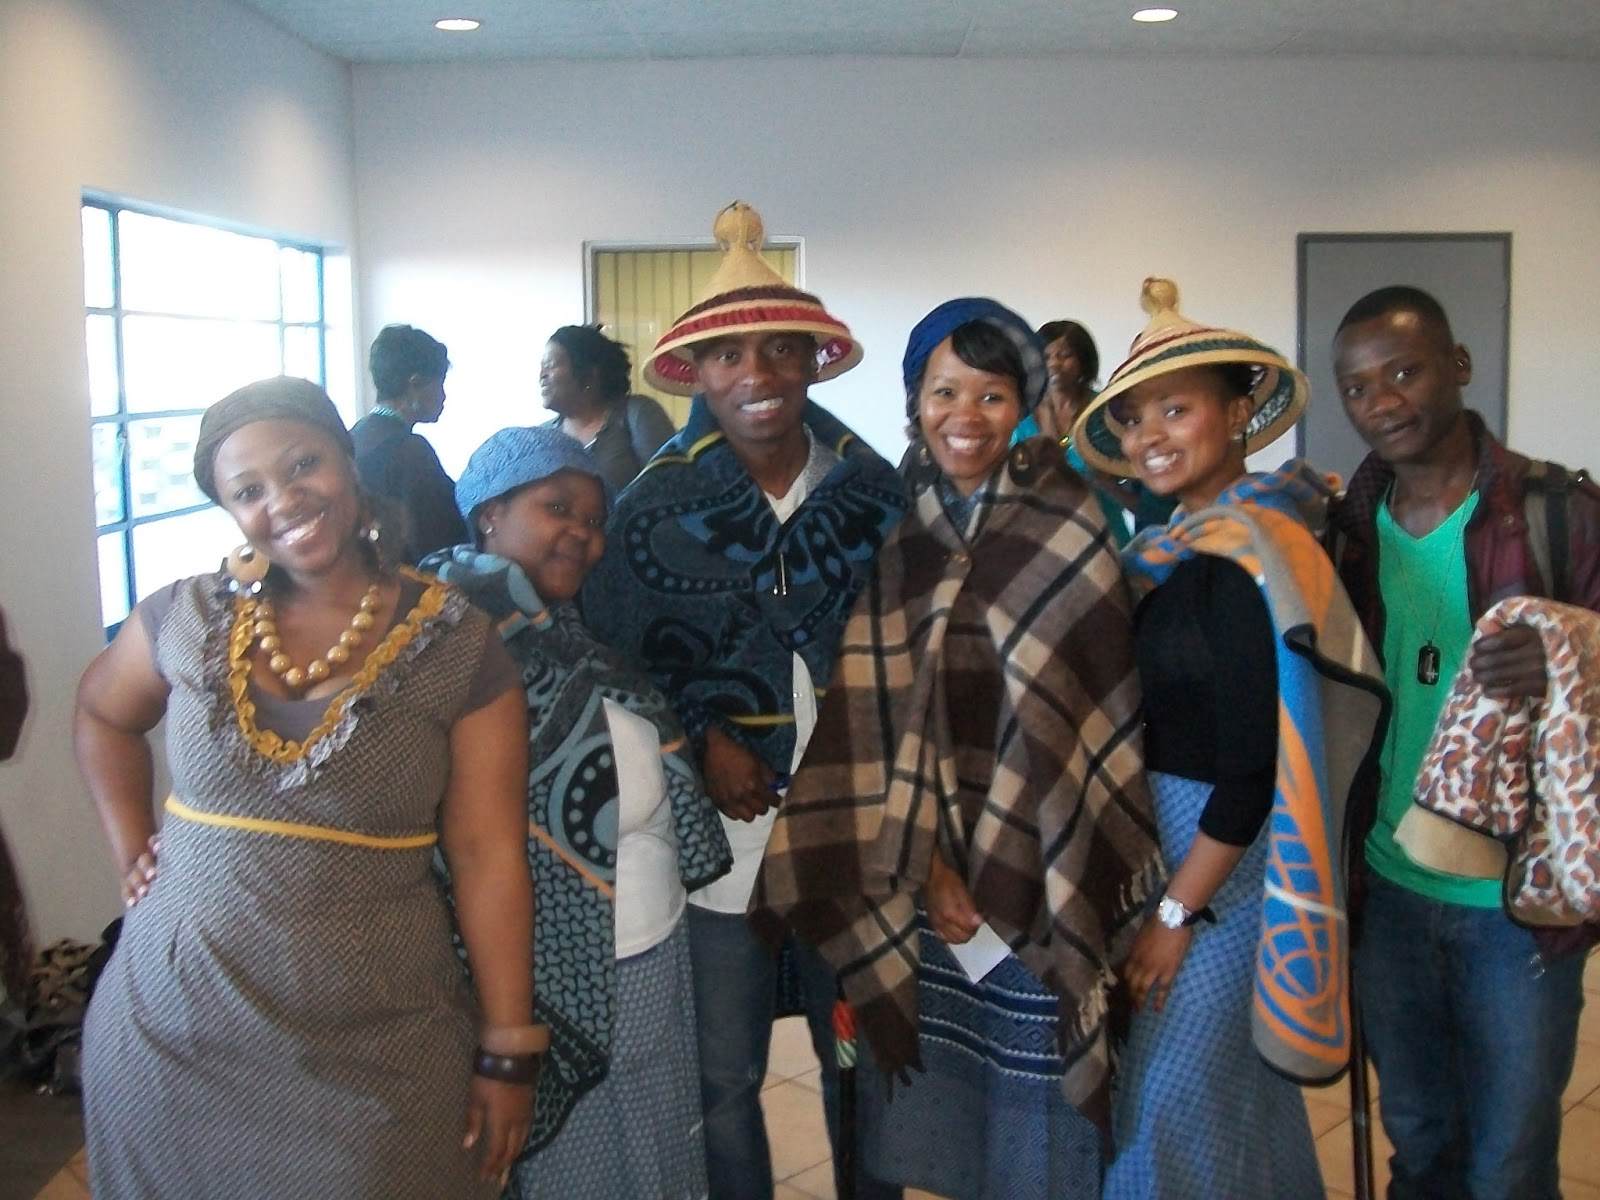 Fashion : CULTURALLY FASHIONABLE I AM PROUD OF MY SOTHO CULTURE